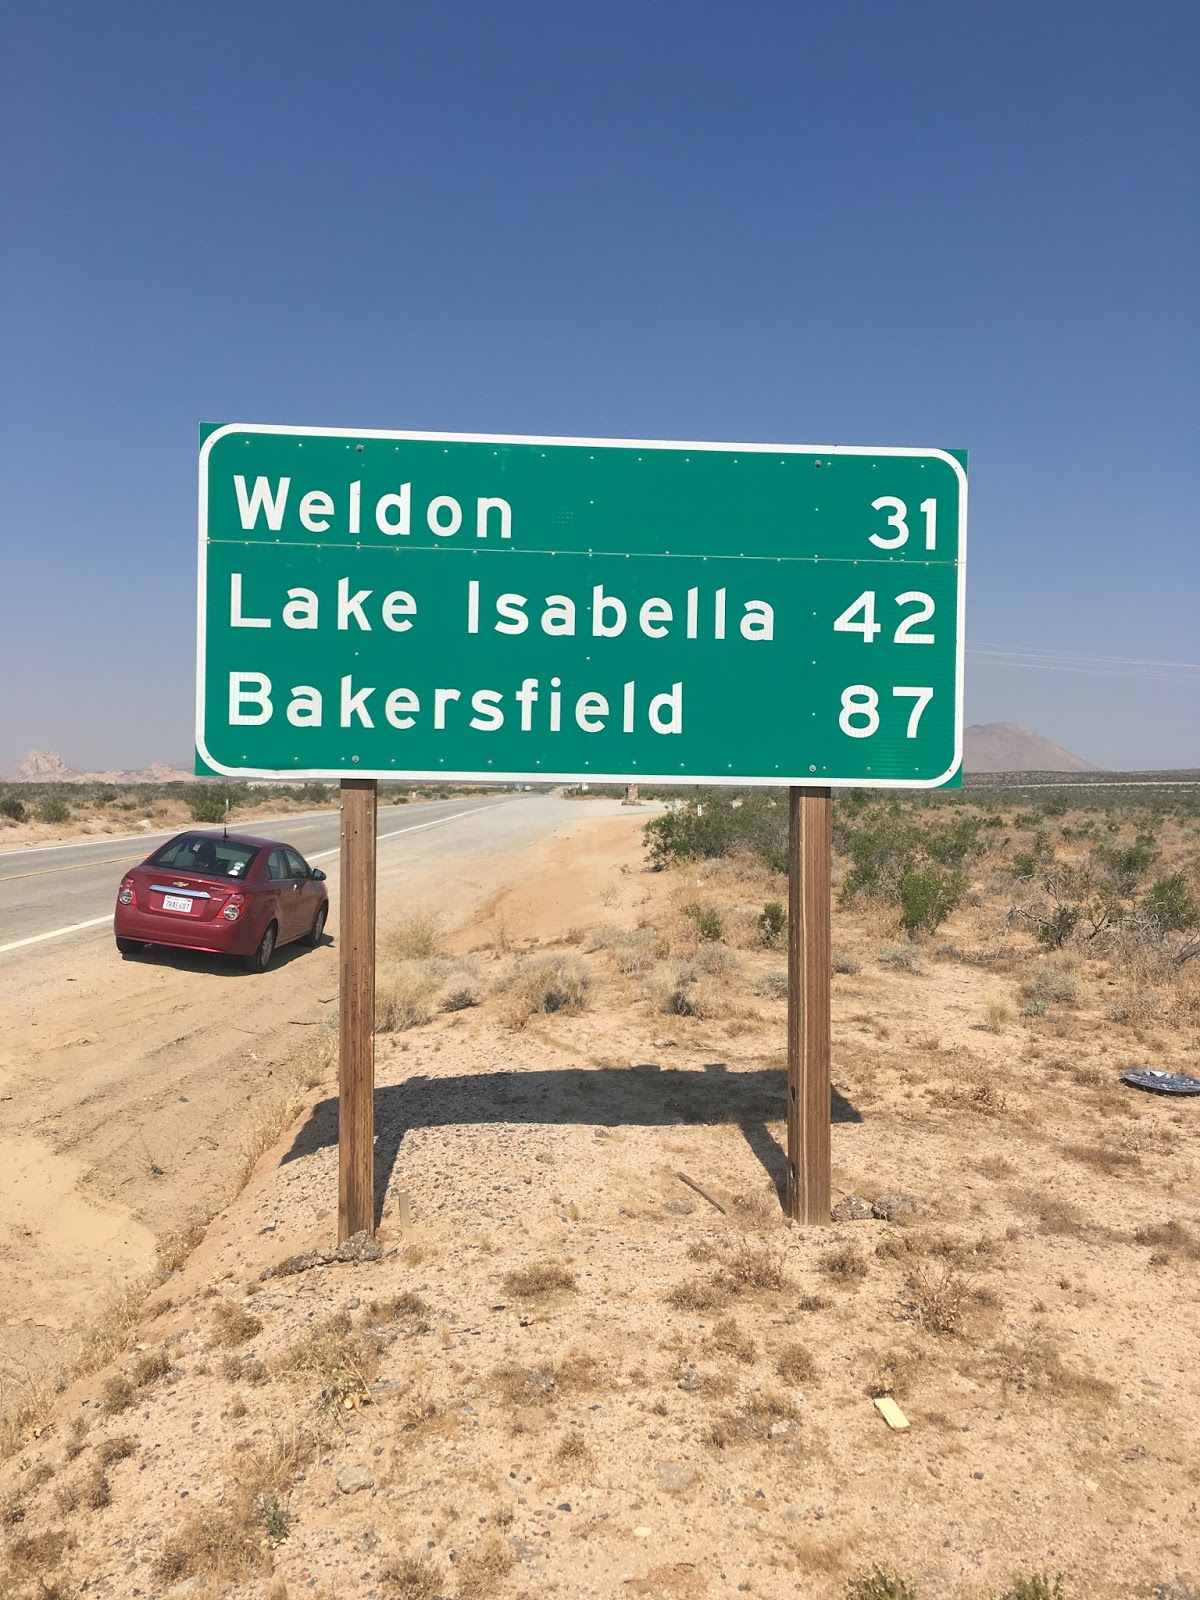 ca 14 used to part of us route 6 before the 1964 state highway renumbering at junction of what was us 6 ca178 there is a historic marker for the ghost town